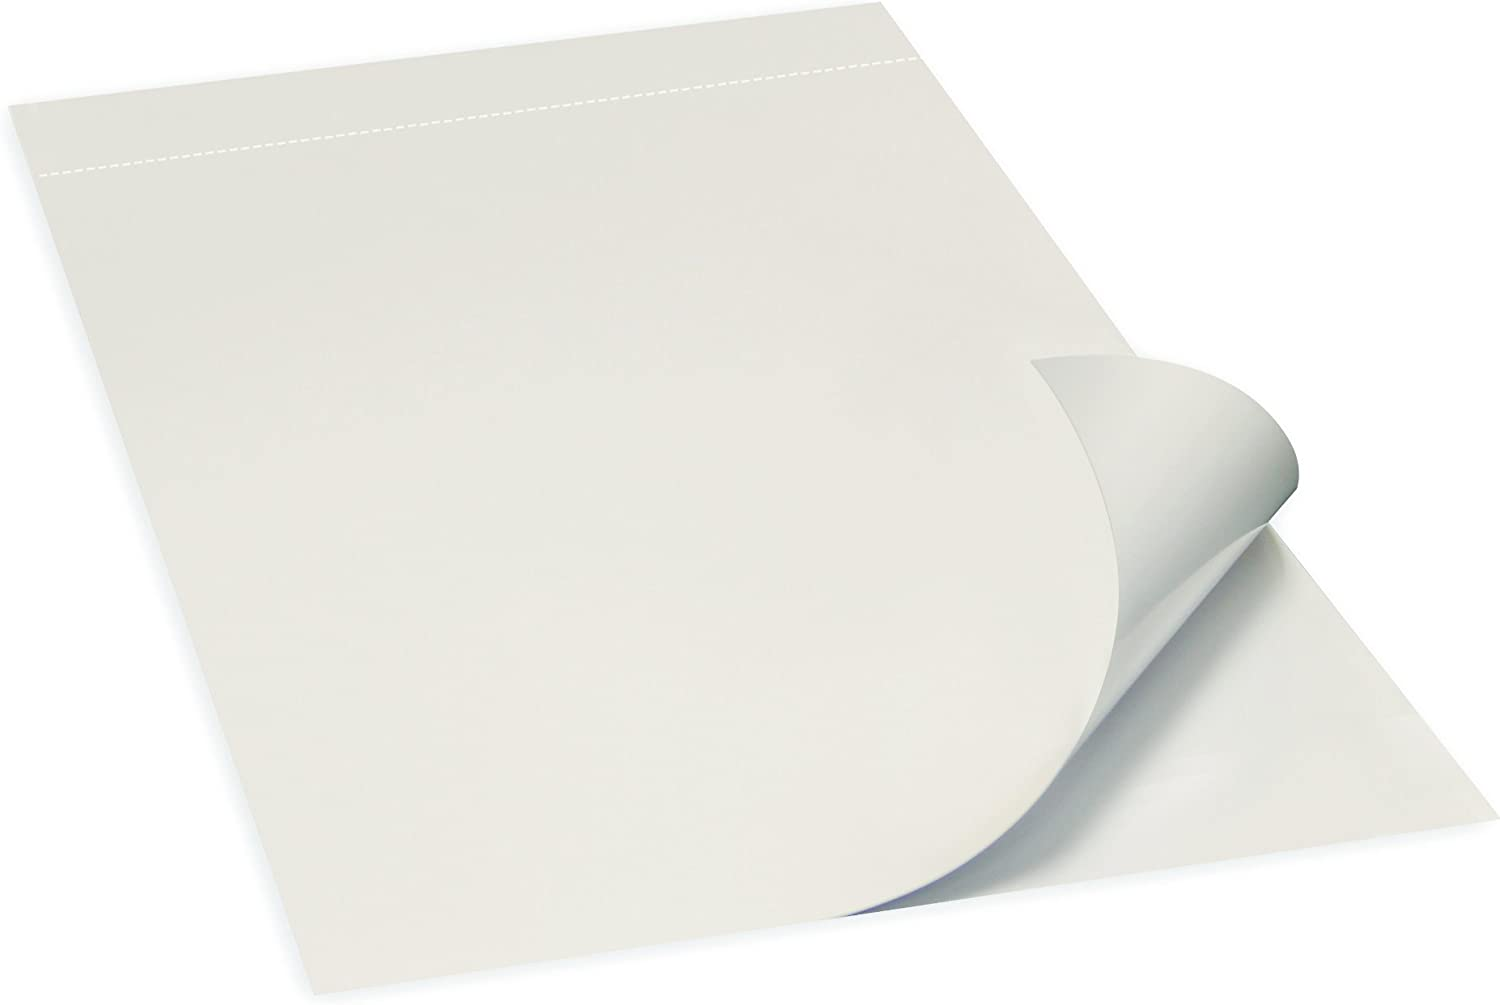 Gbc Laminating Cleaning And Carrier Sheets Letter Legal Size 5 Pack 6447411258 Amazon Ca Office Products